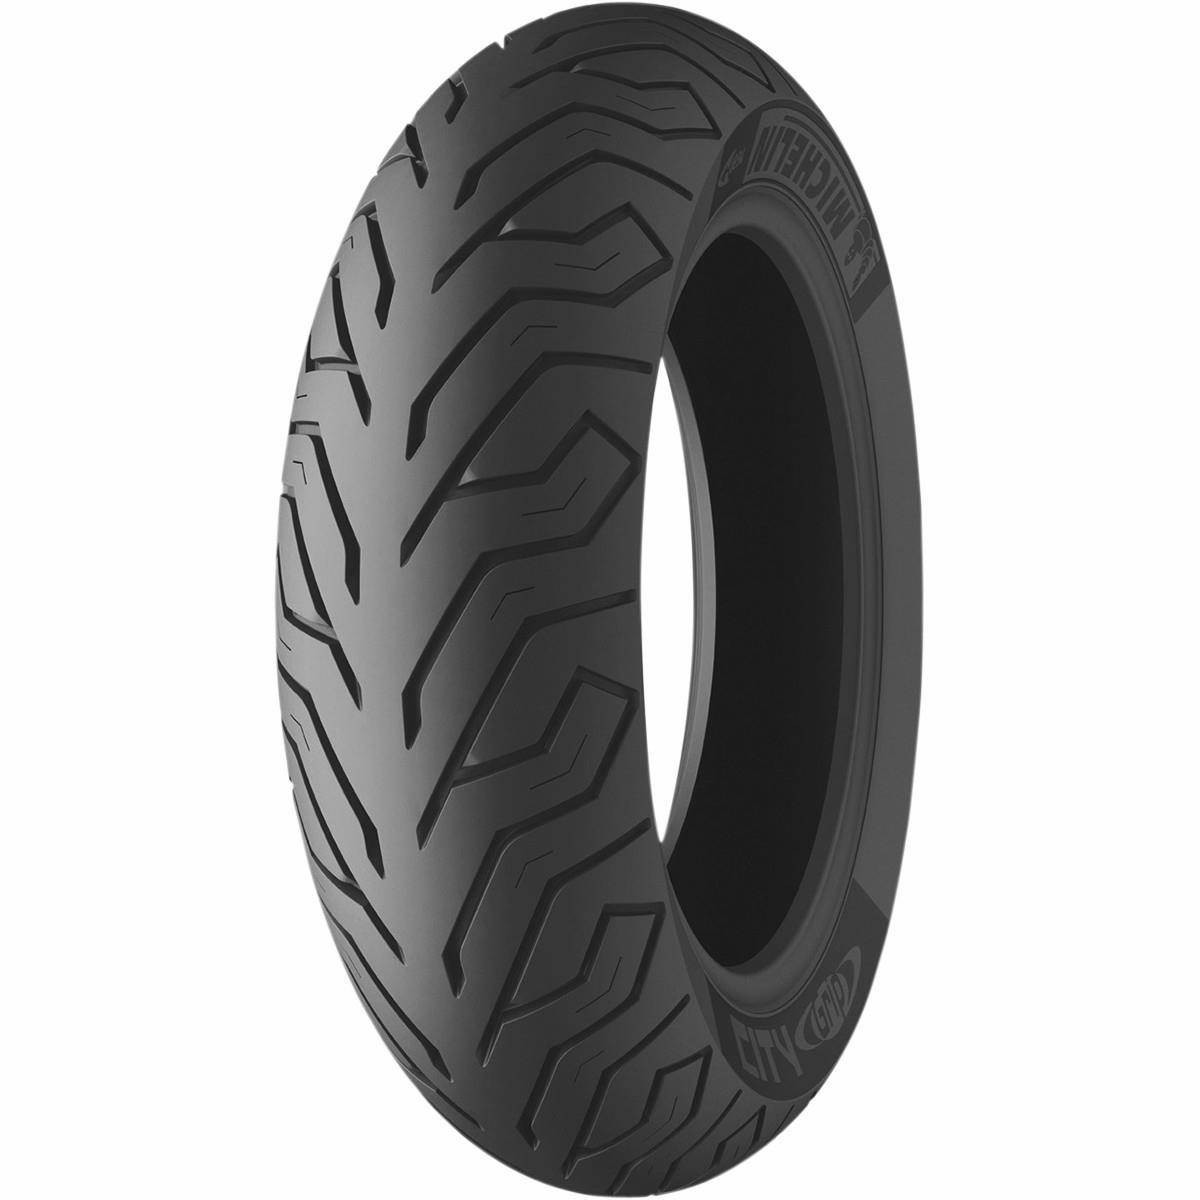 Мотошина MICHELIN City Grip 130/70-16 R TL